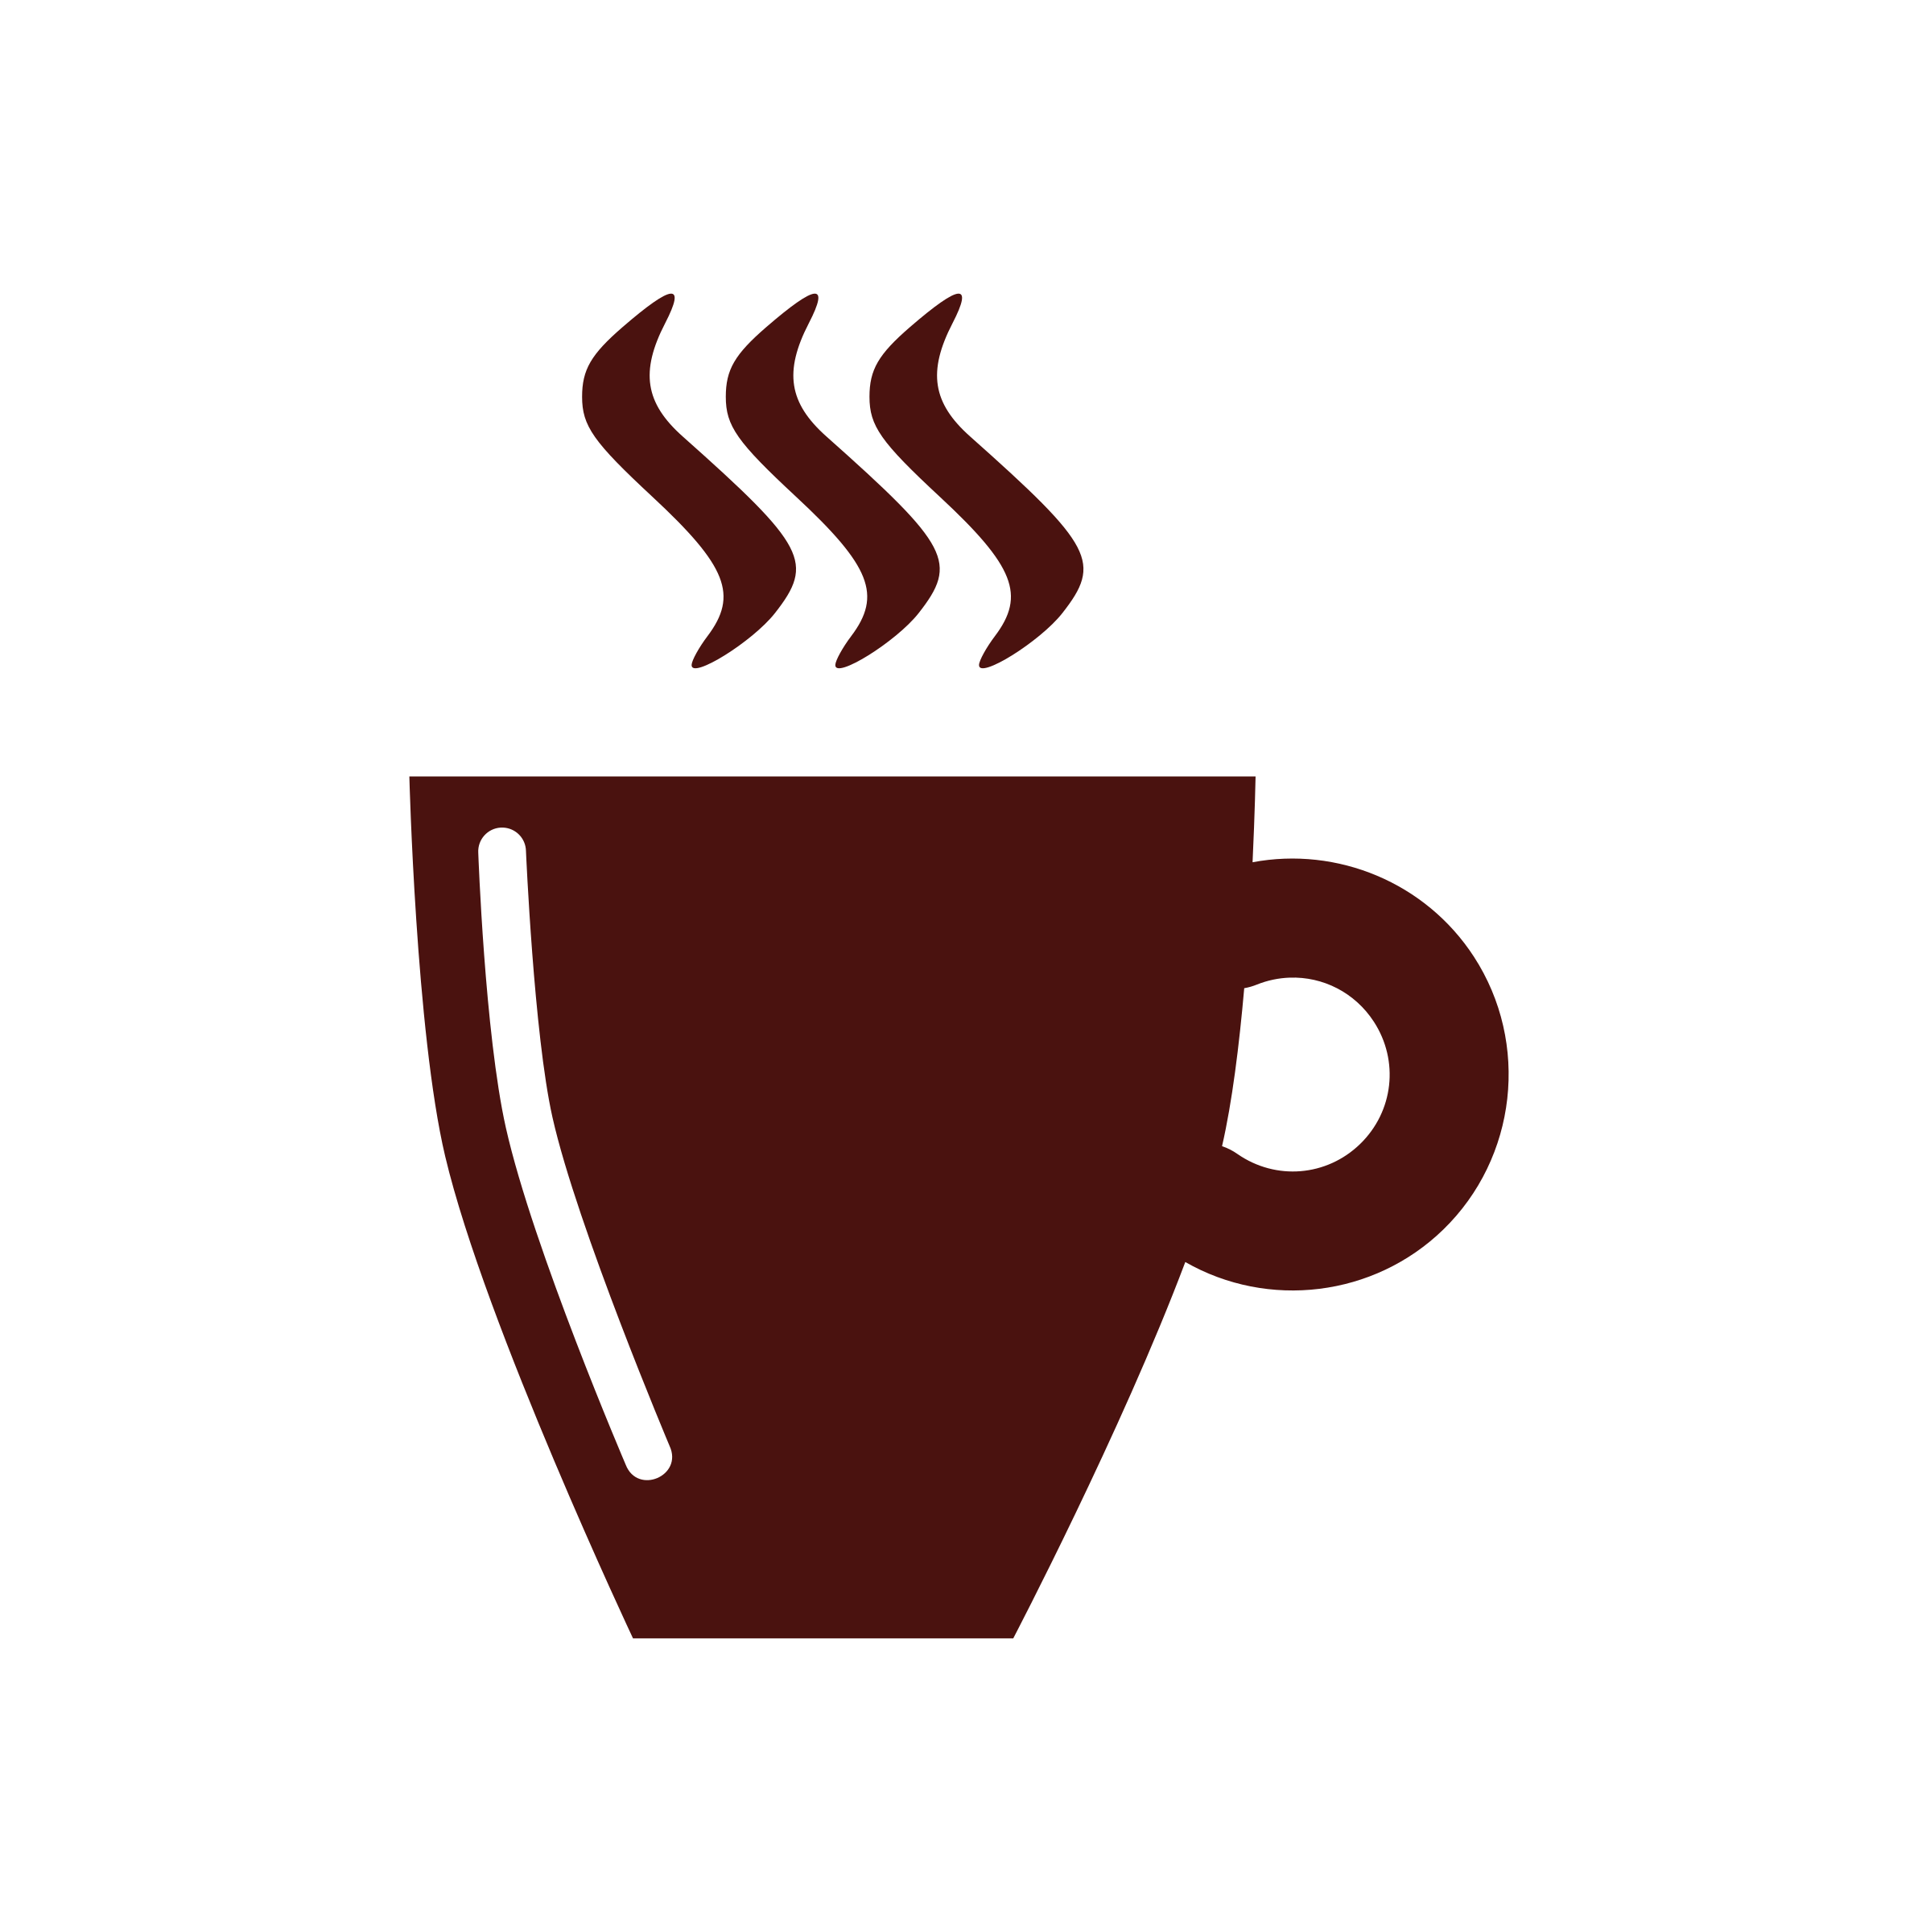 Coffee cup logo png. Flat icons free and